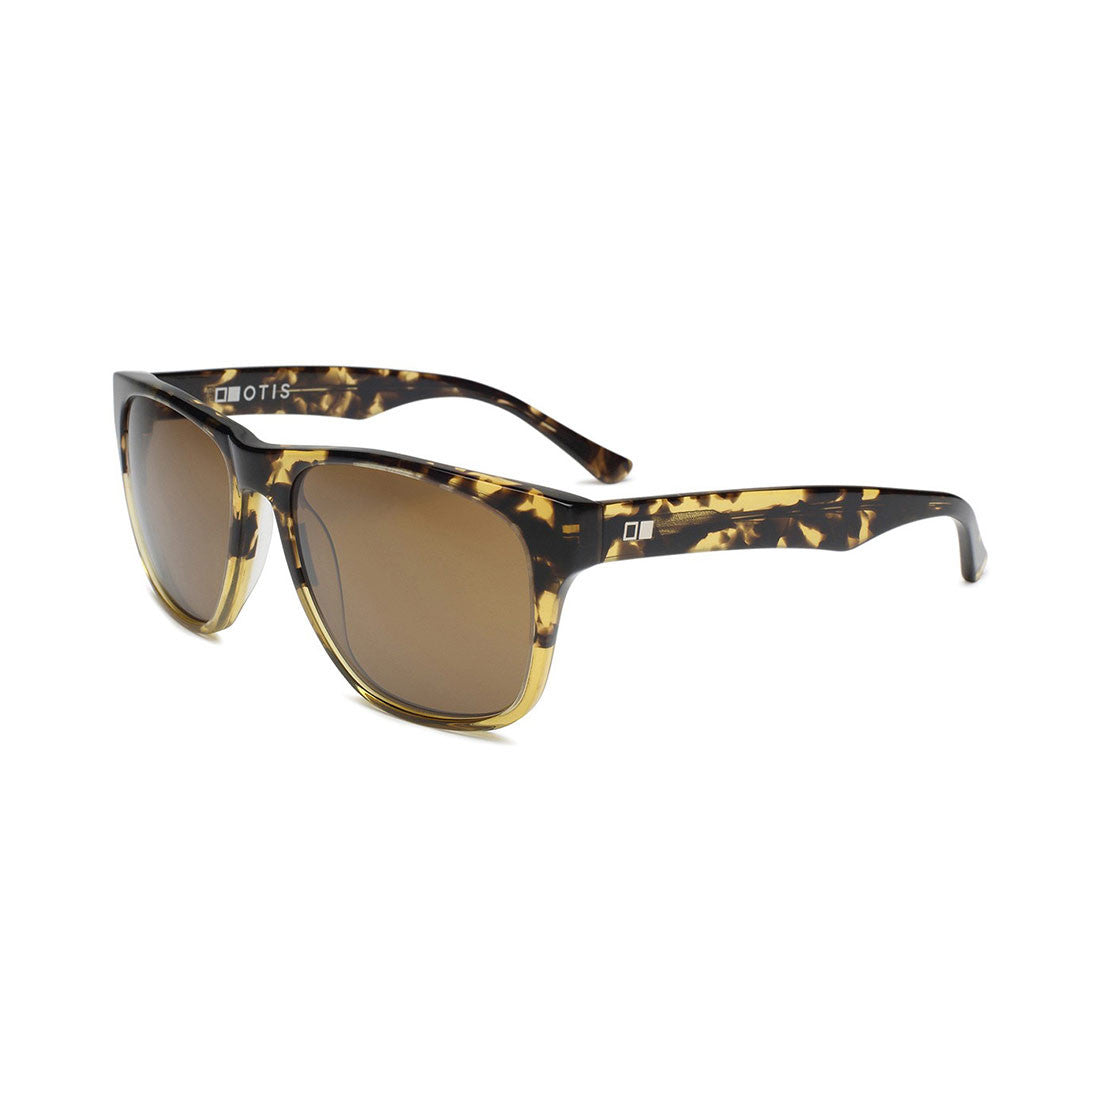 Otis Modern Theory Sunglasses (Amber Tort/Tropical Brown)